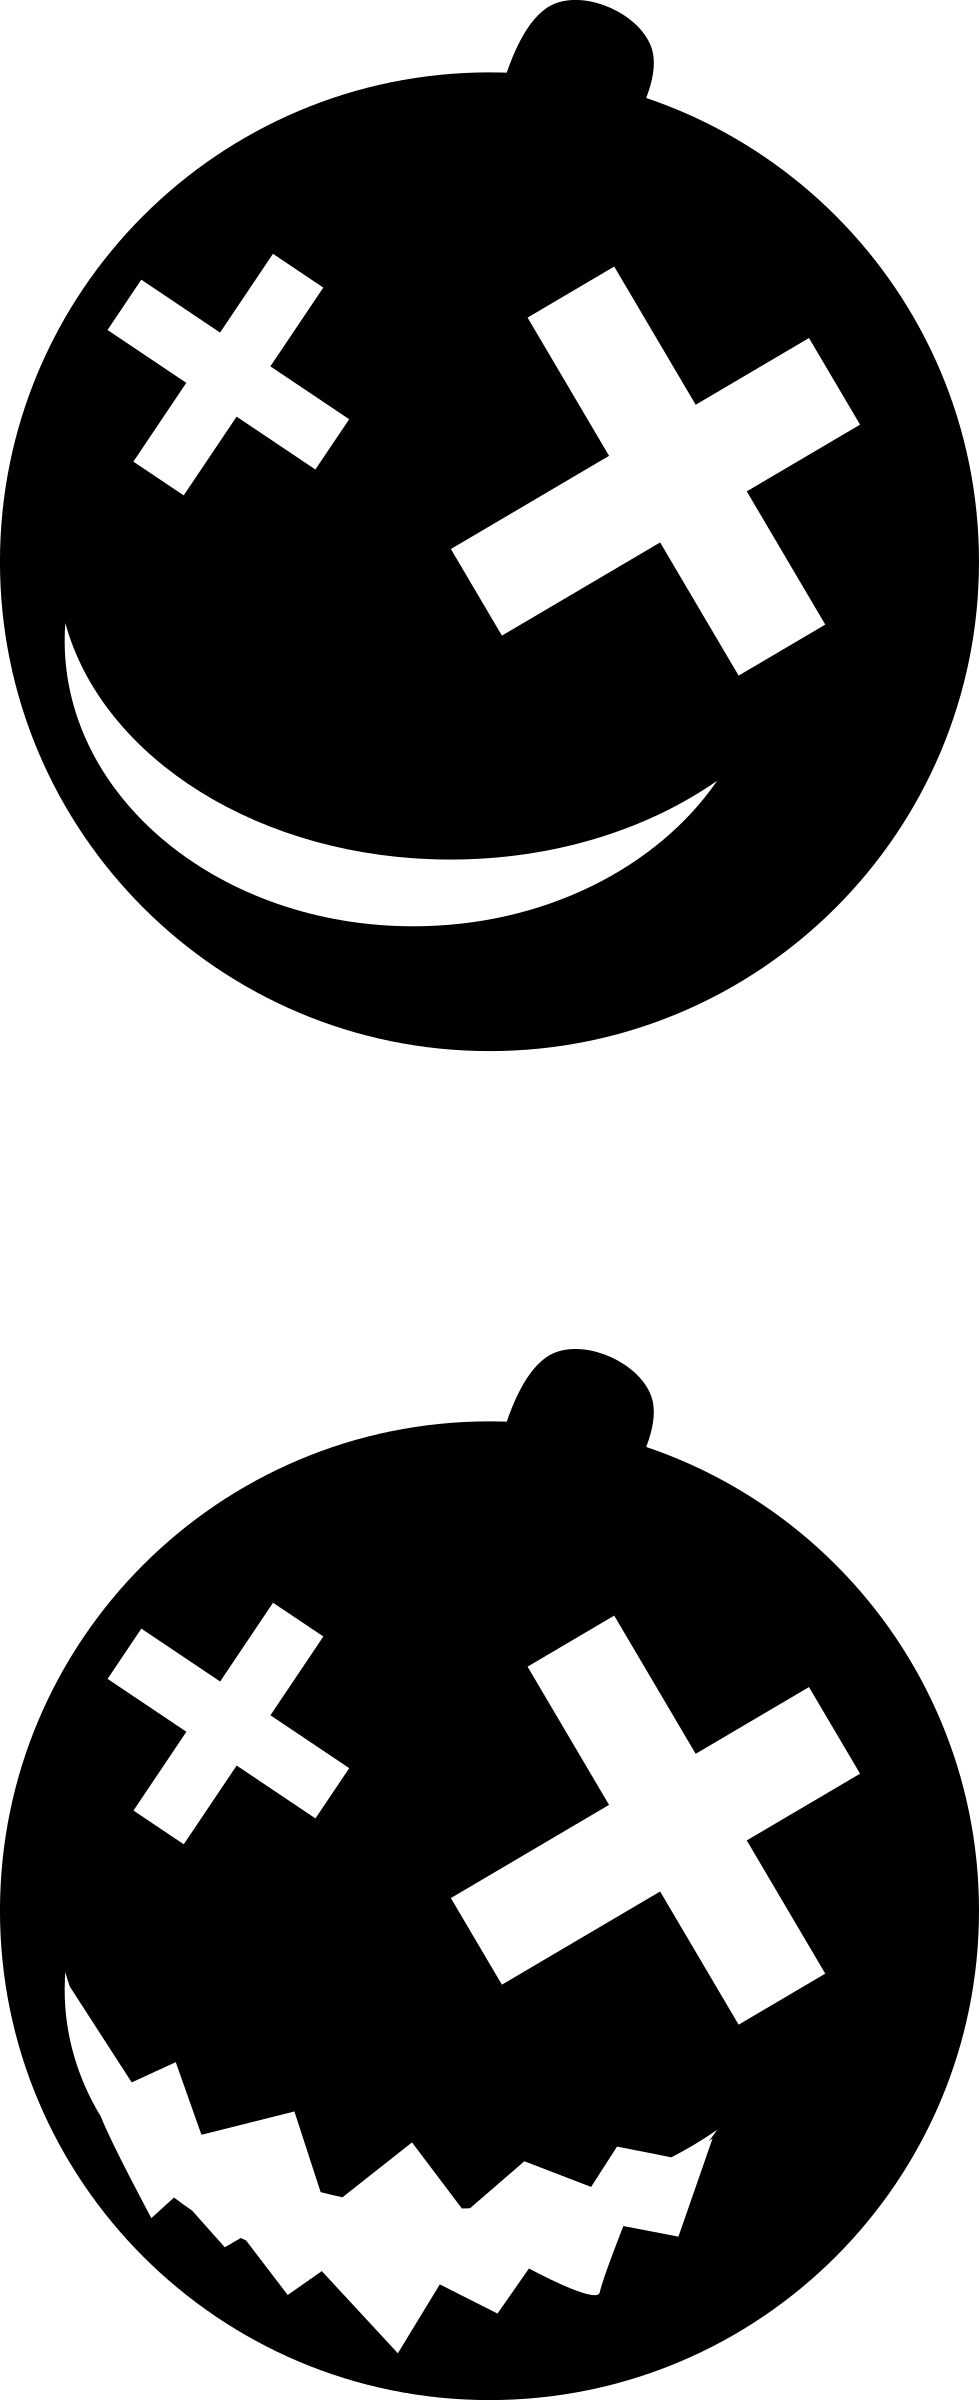 Halloween silhouette clipart pumpkin banner library Pumpkin Silhouette Png at GetDrawings.com | Free for personal use ... banner library